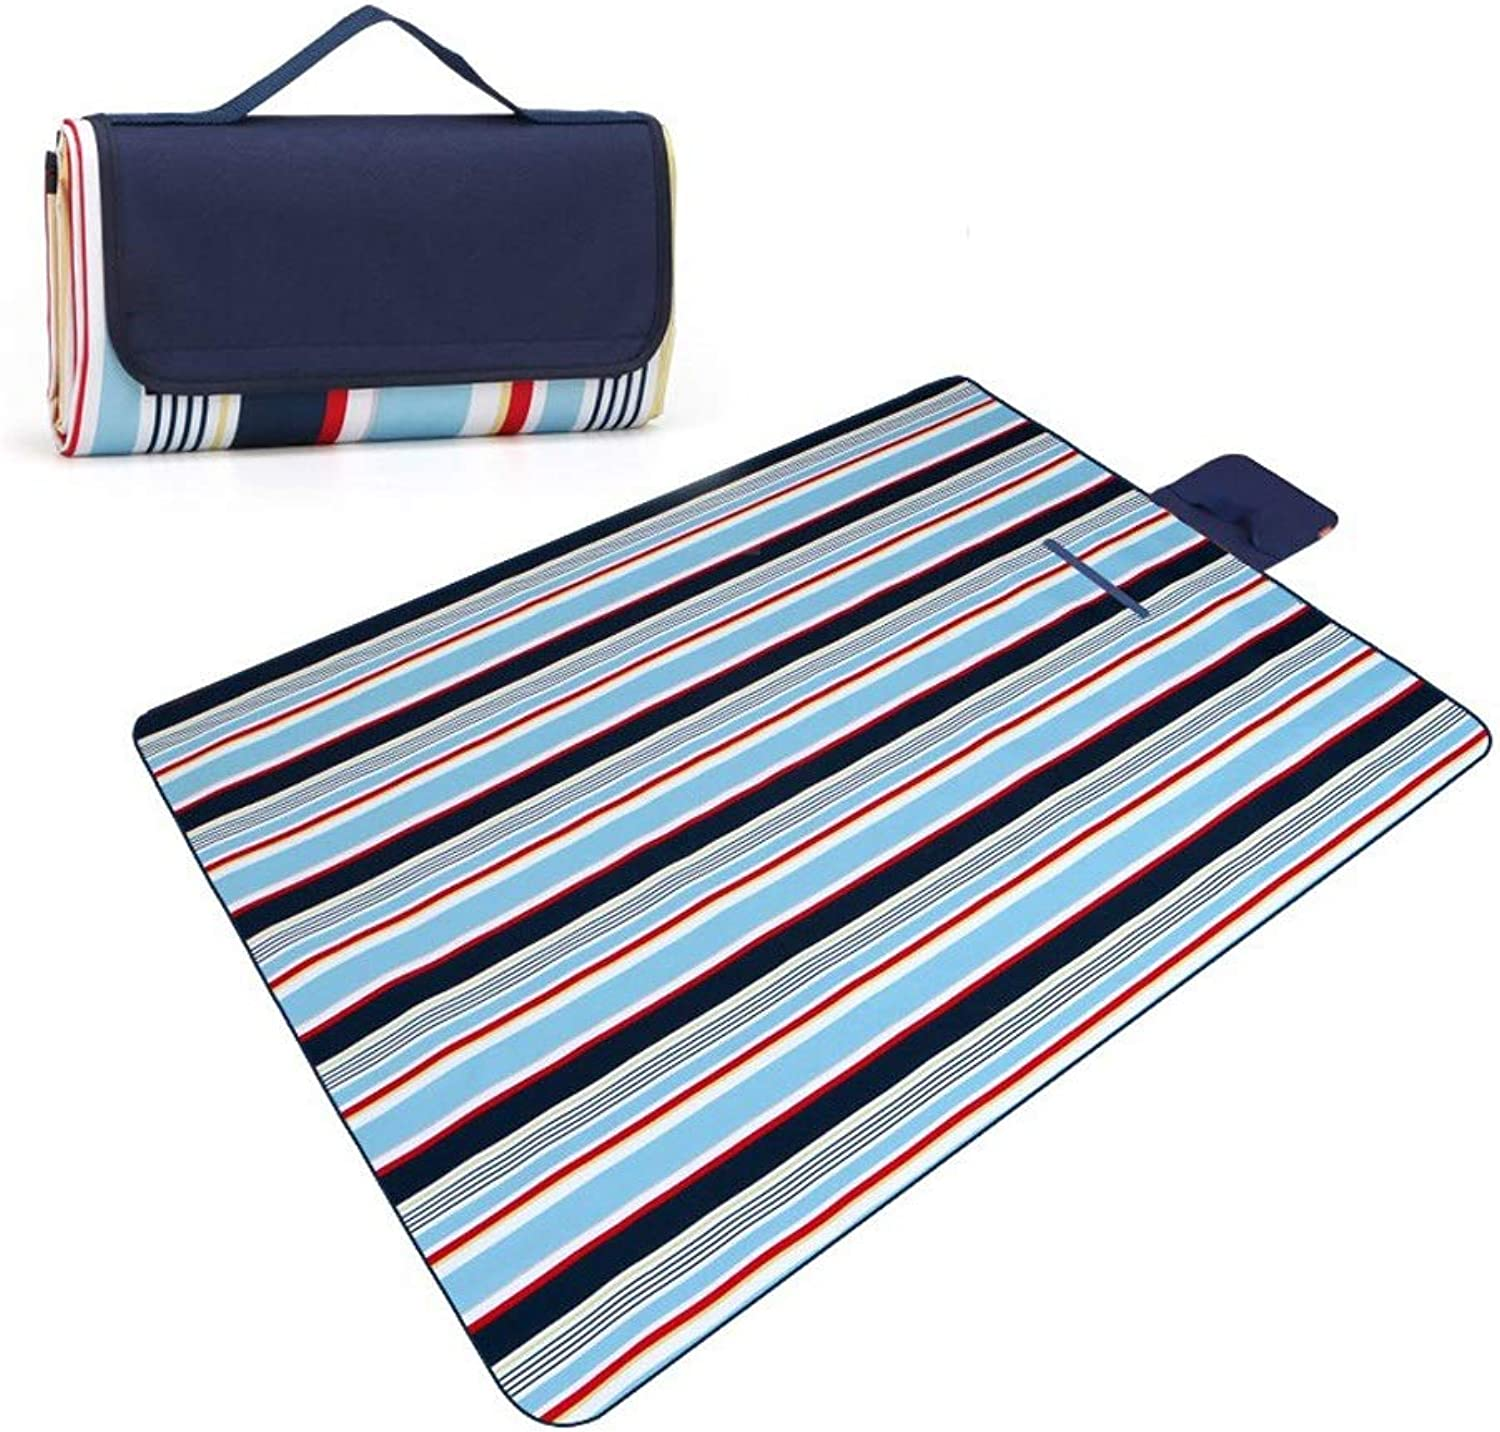 Picnic Blanket, Outdoor Indoor Portable Blanket Waterproof Backing with Handle, Foldable Beach Mat for Picnic 200 X 150 cm